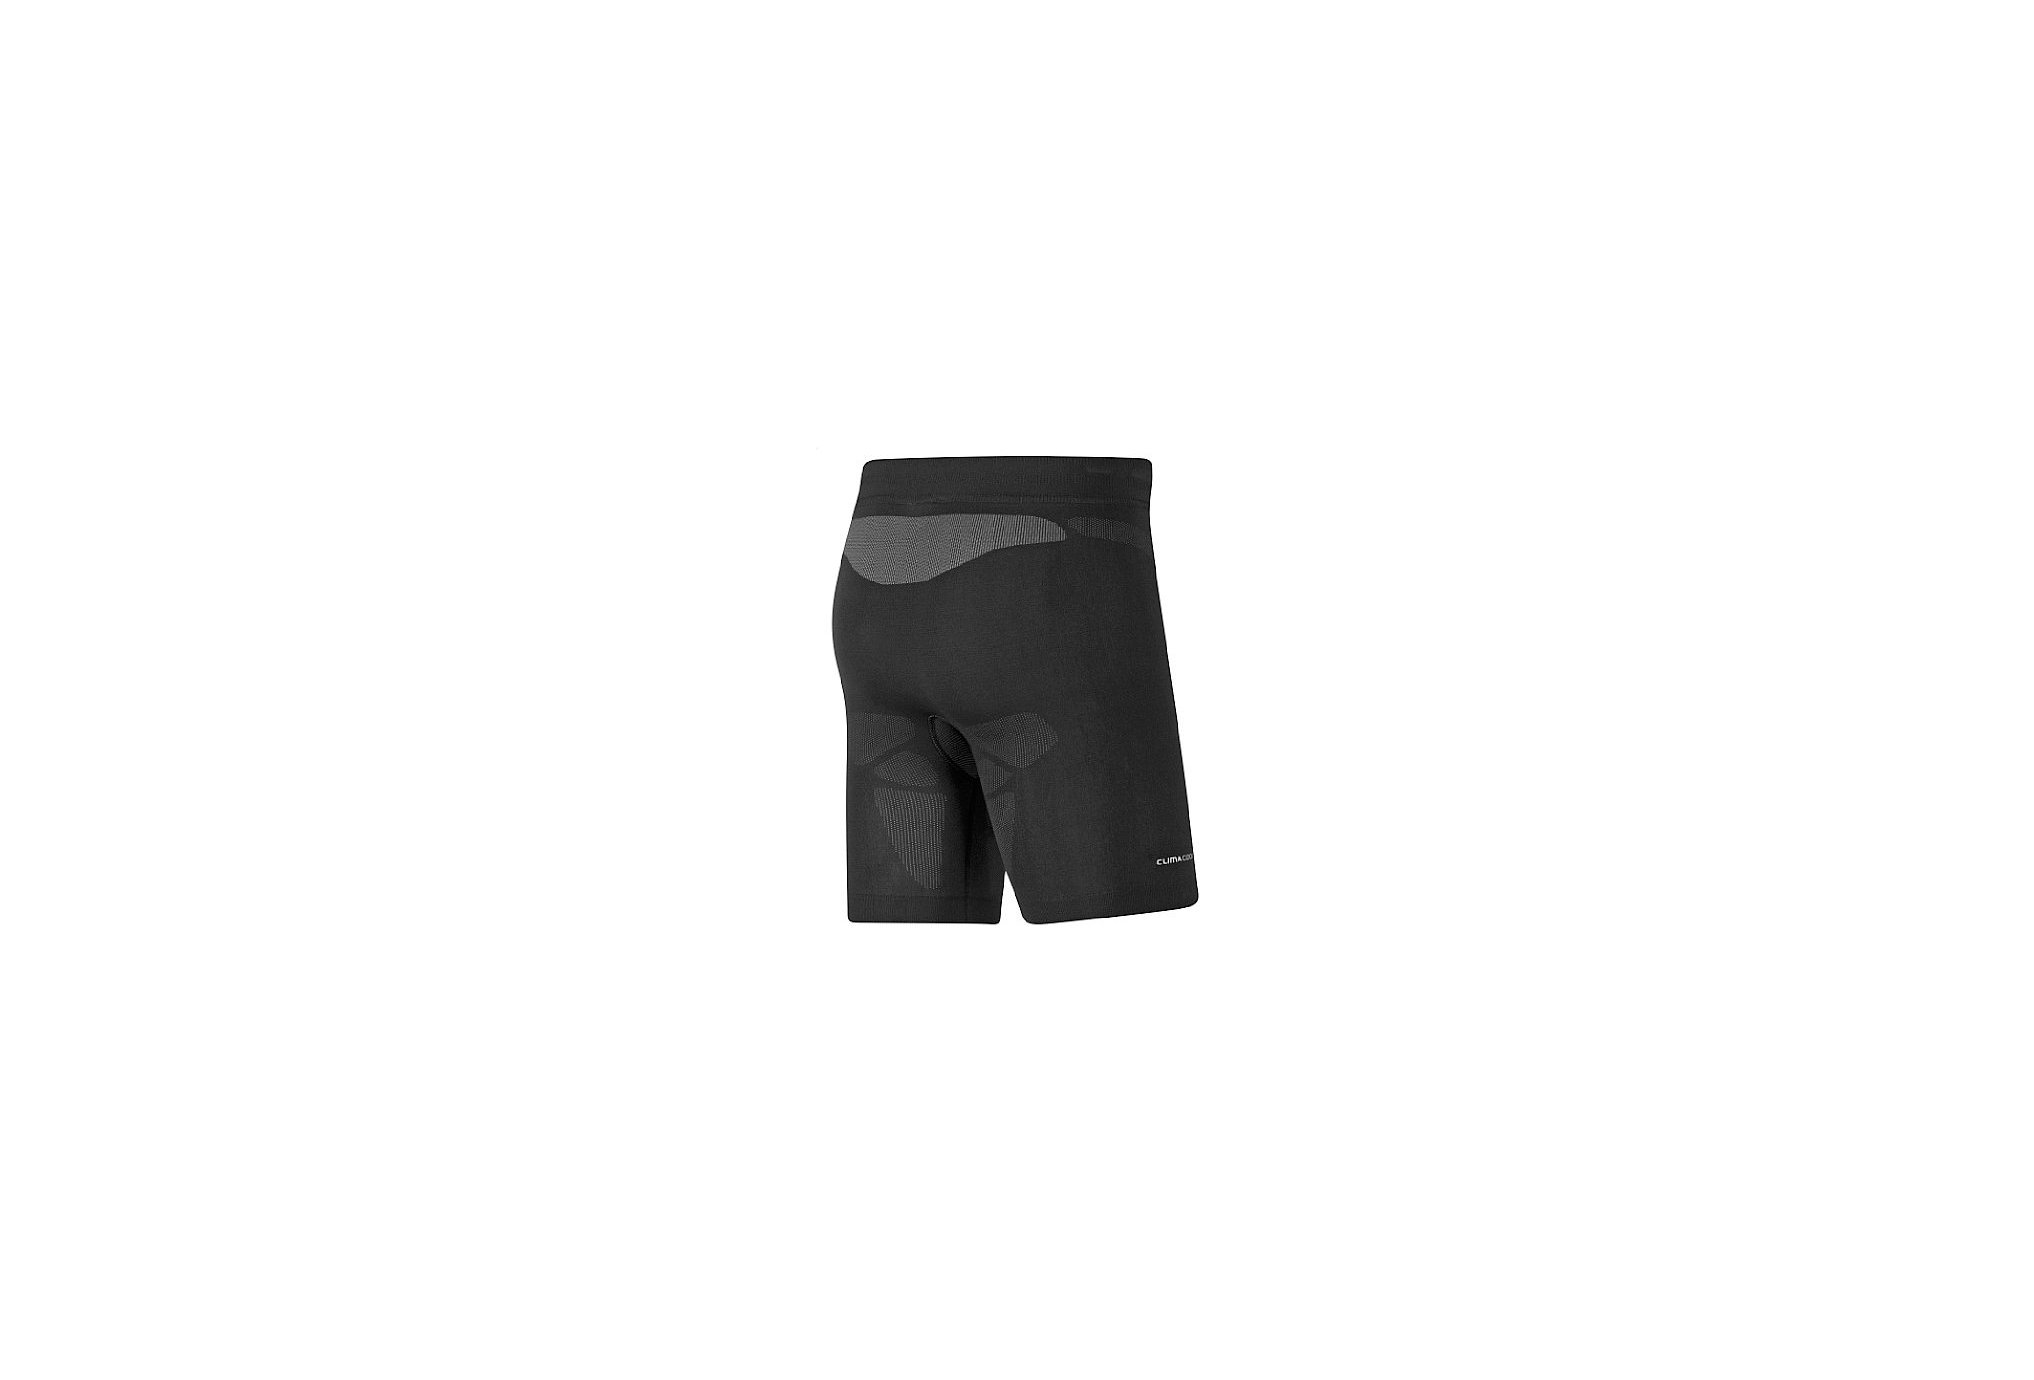 boxer adidas techfit,adidas boxer long techfit men vetements